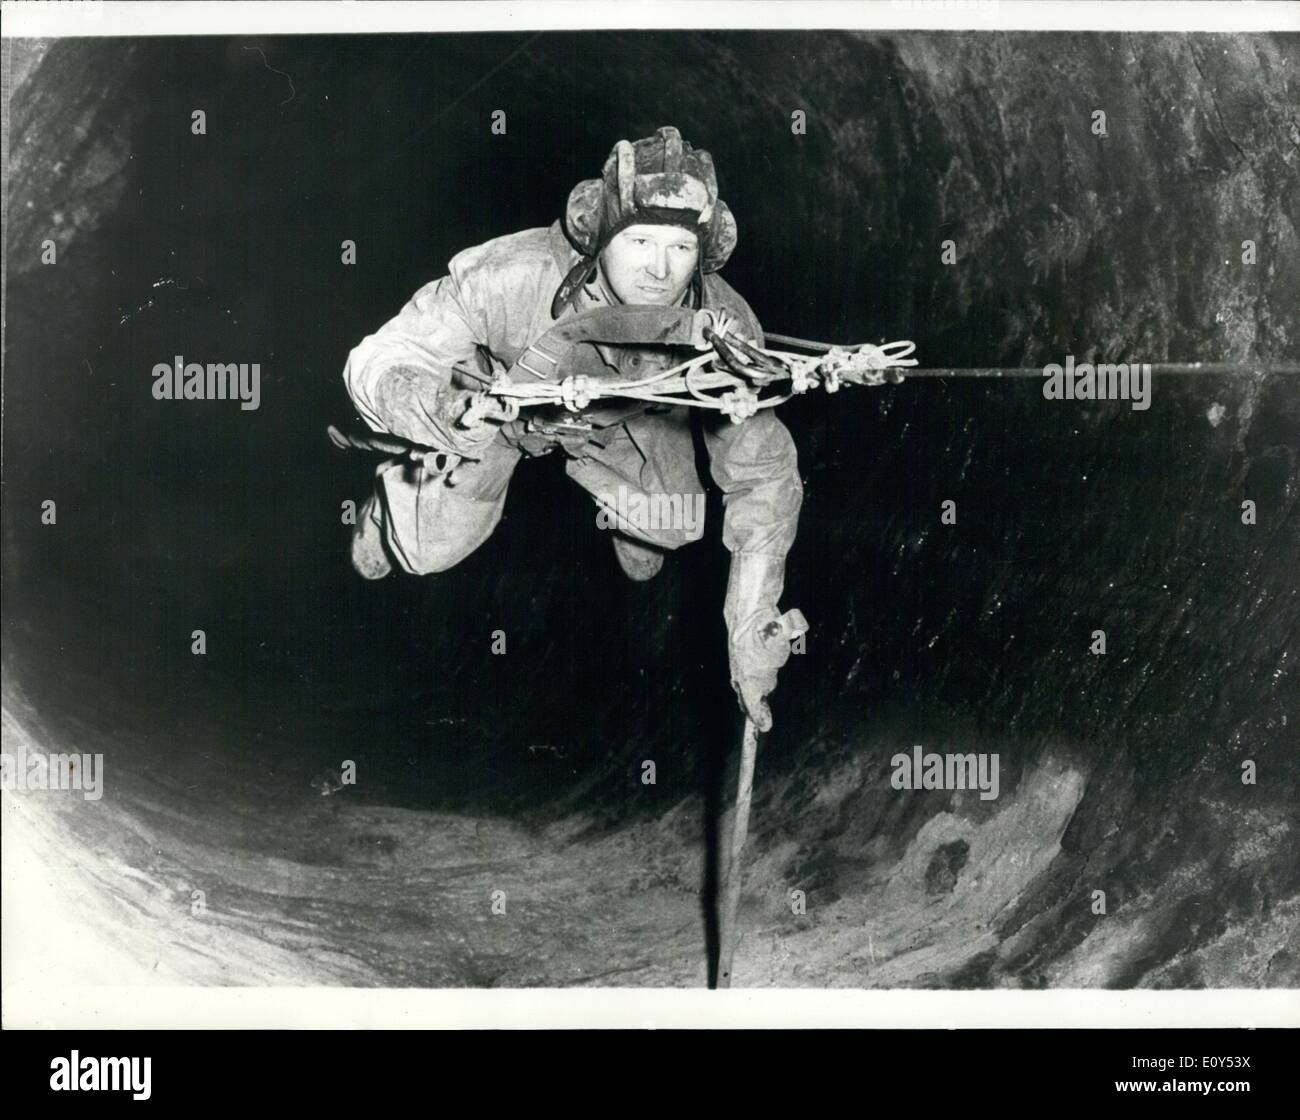 Nov. 11, 1968 - Searching deep well for NAZI archives. Members of the sports diving club Plazen (pilsen) are carrying - Stock Image